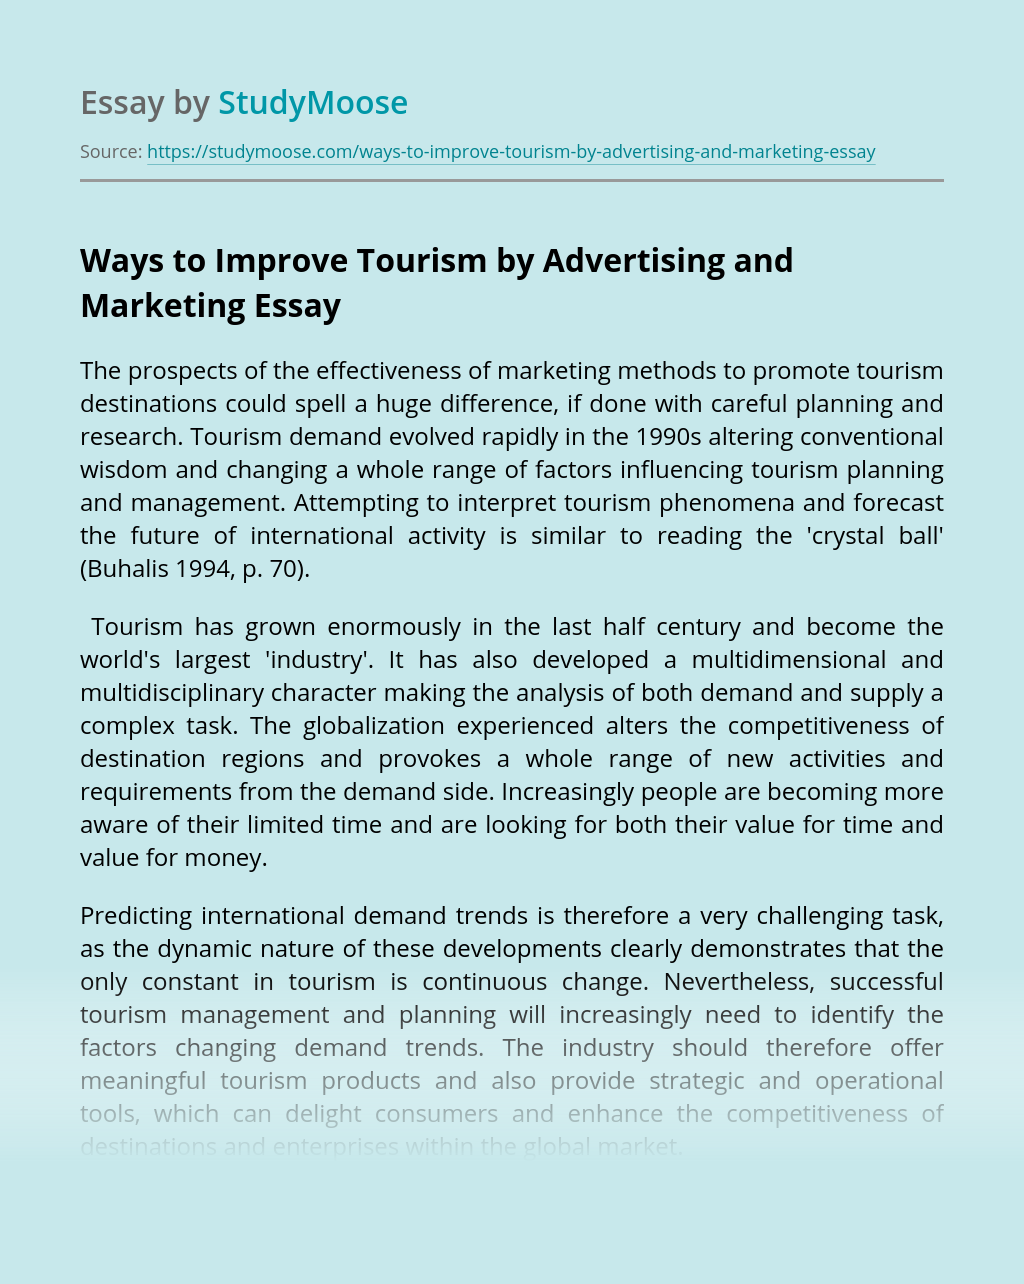 Ways to Improve Tourism by Advertising and Marketing